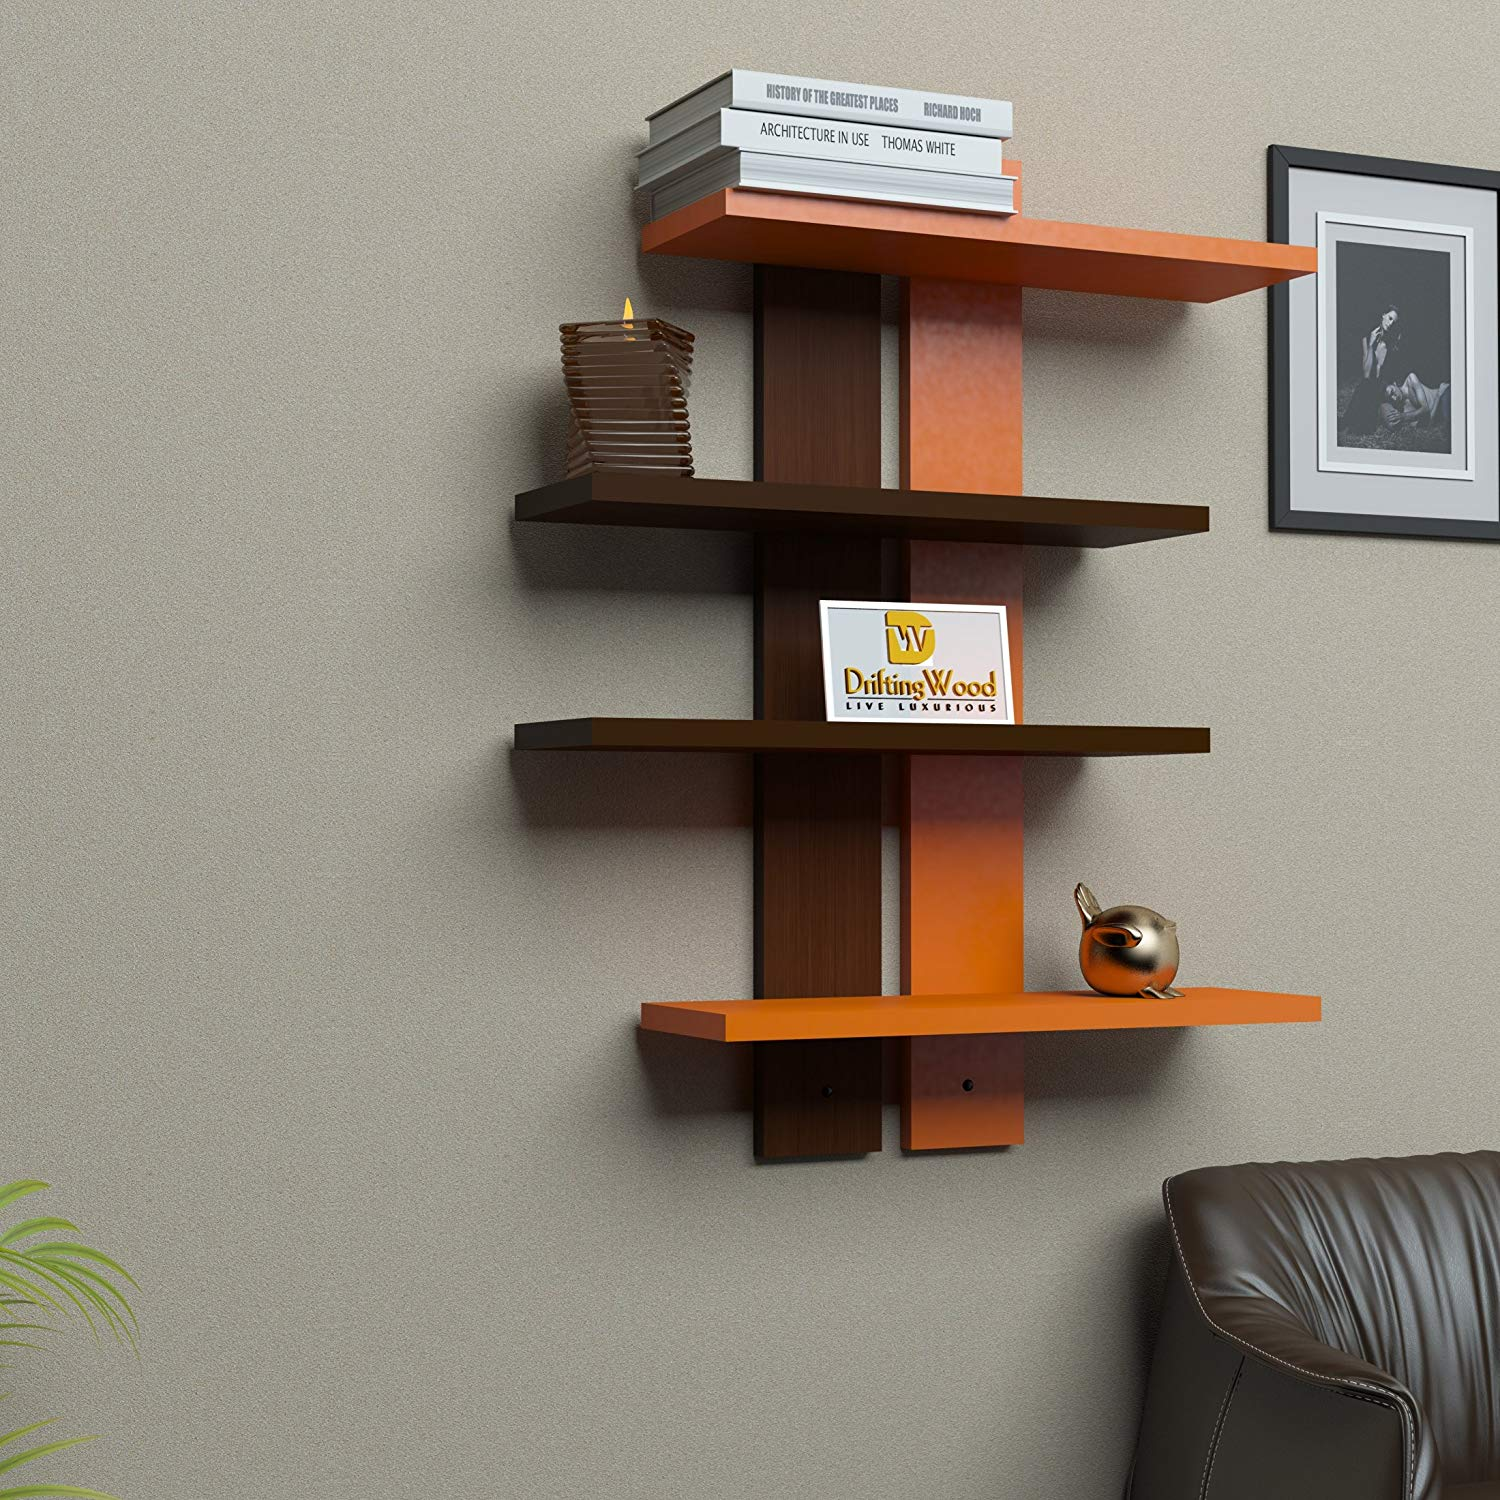 Wall Shelf Design Driftingwood Wooden Ladder Shape 4 Tier Wall Shelf Designer Wall Rack Shelves Orange Brown